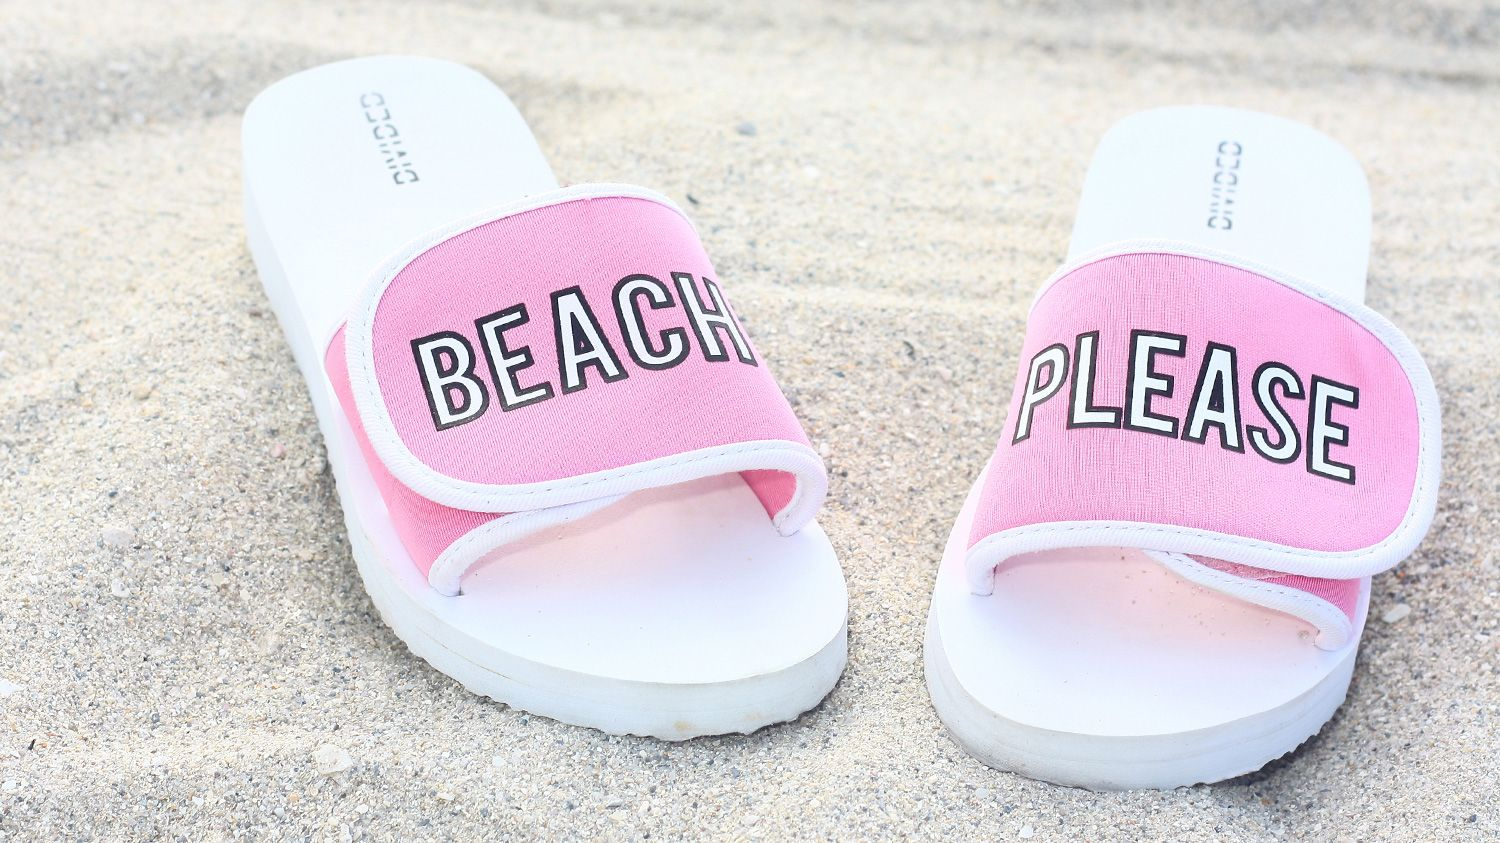 dce9ded1e loe-sunshine-miami-beach-please-h-m-flip-flops-fashion